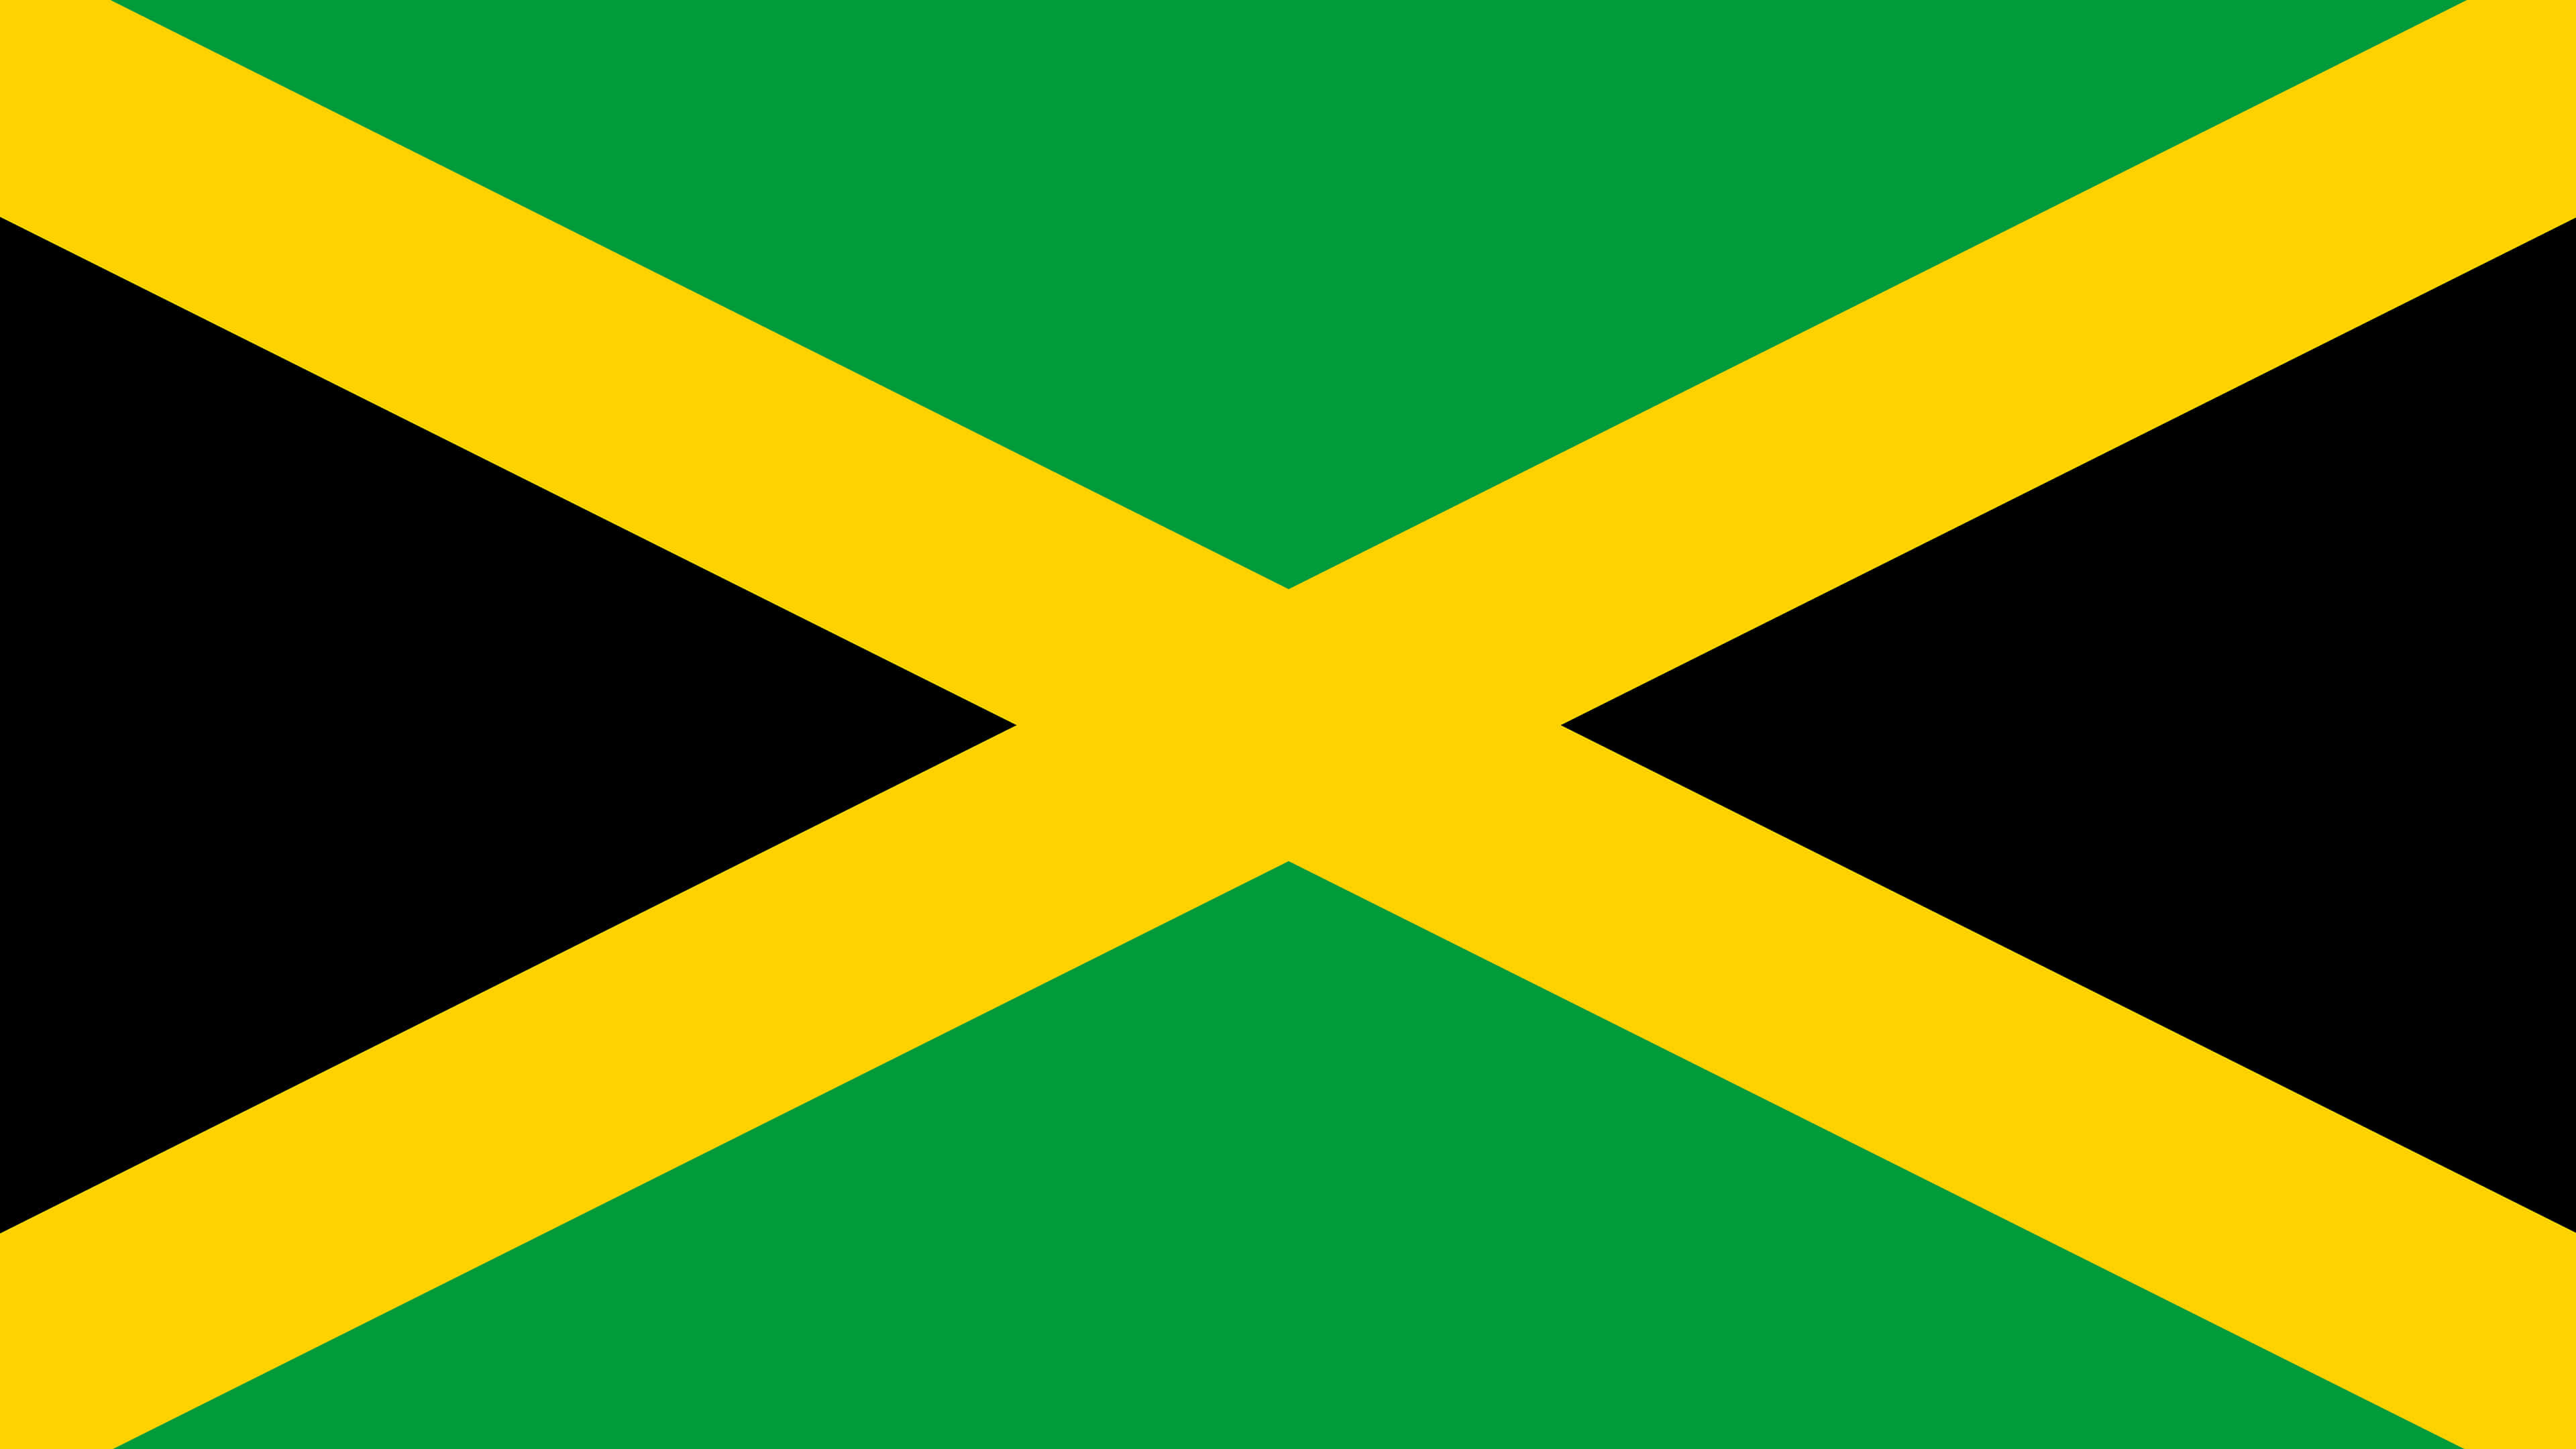 jamaica flag uhd 4k wallpaper